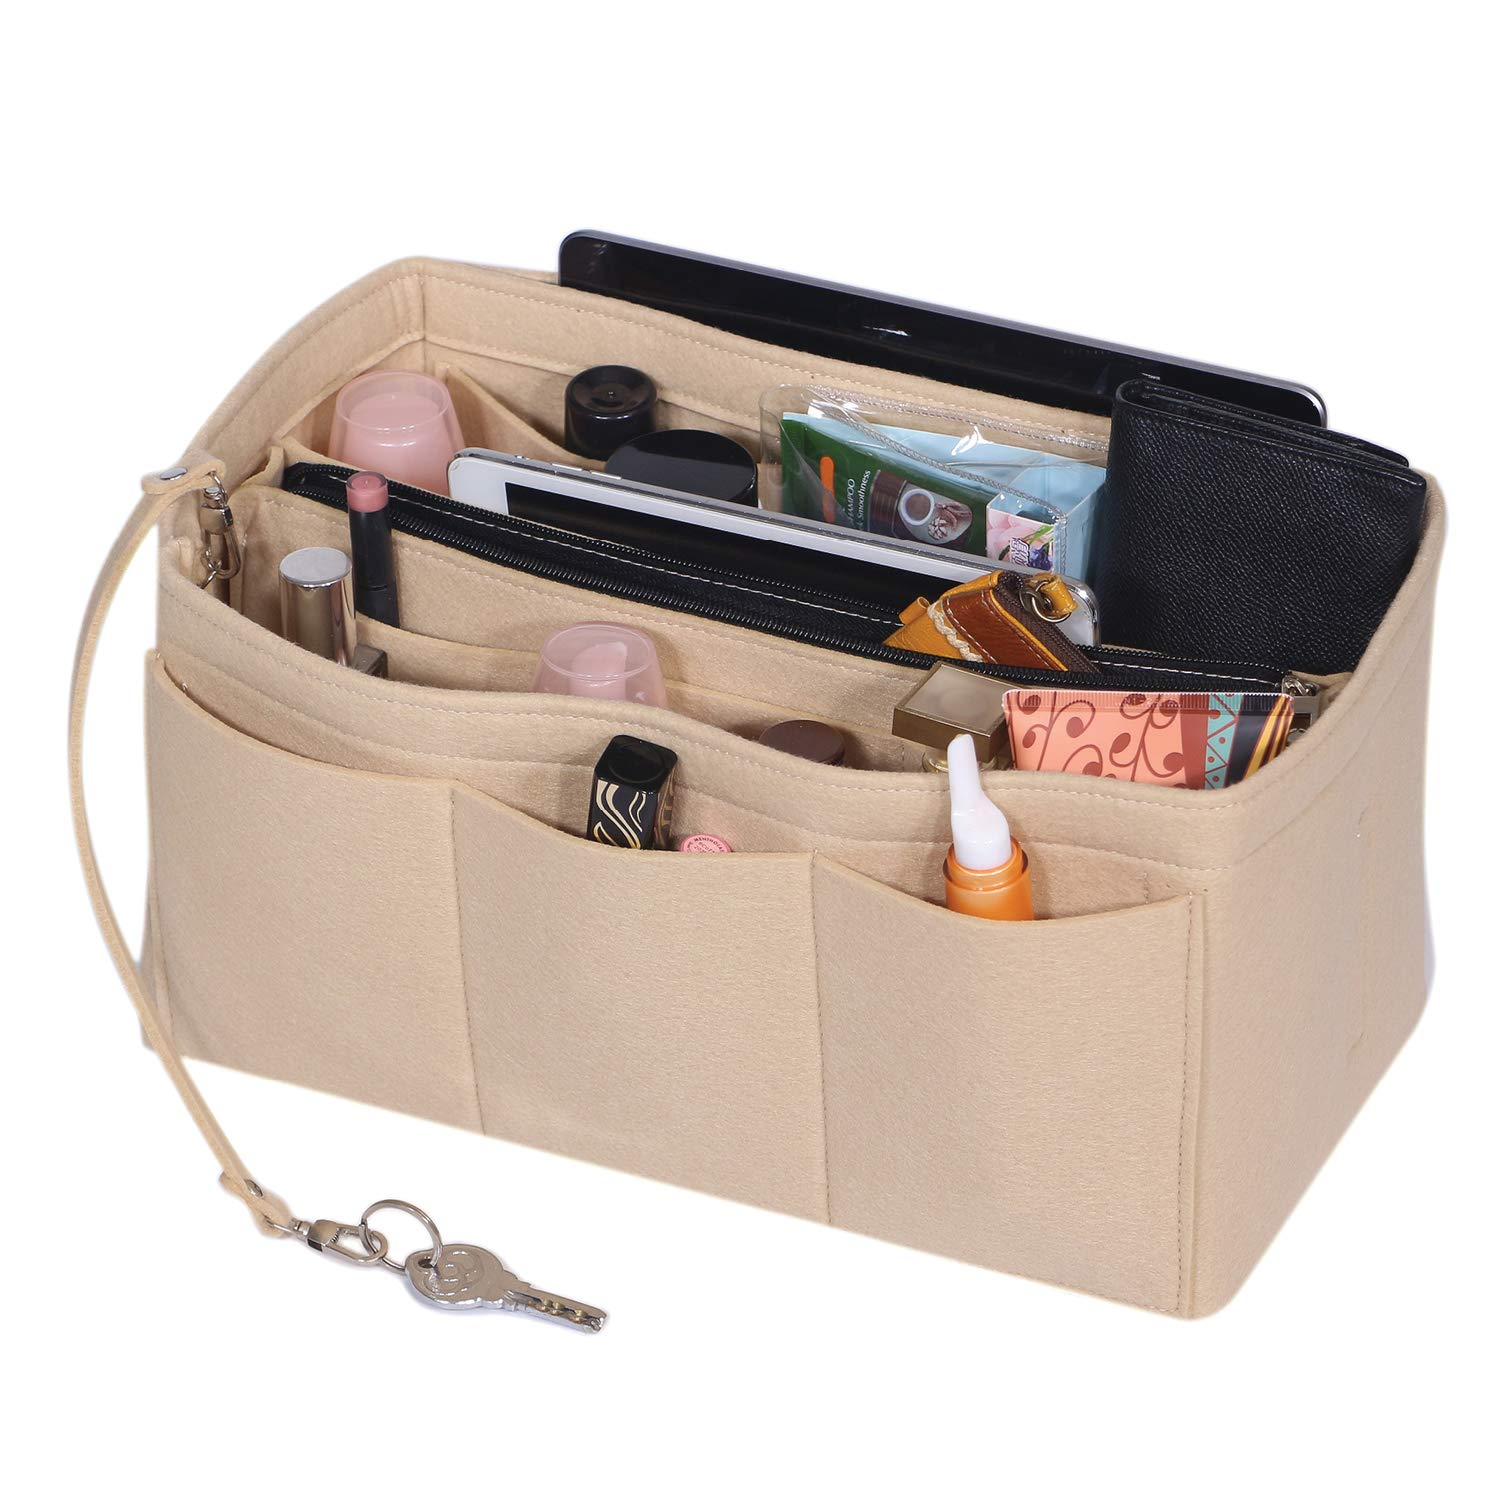 Felt Purse Organizer Insert Handbag and Tote Shaper with Zipper Bag in Bag Fit Speedy Neverfull Longchamp Tote X-Large